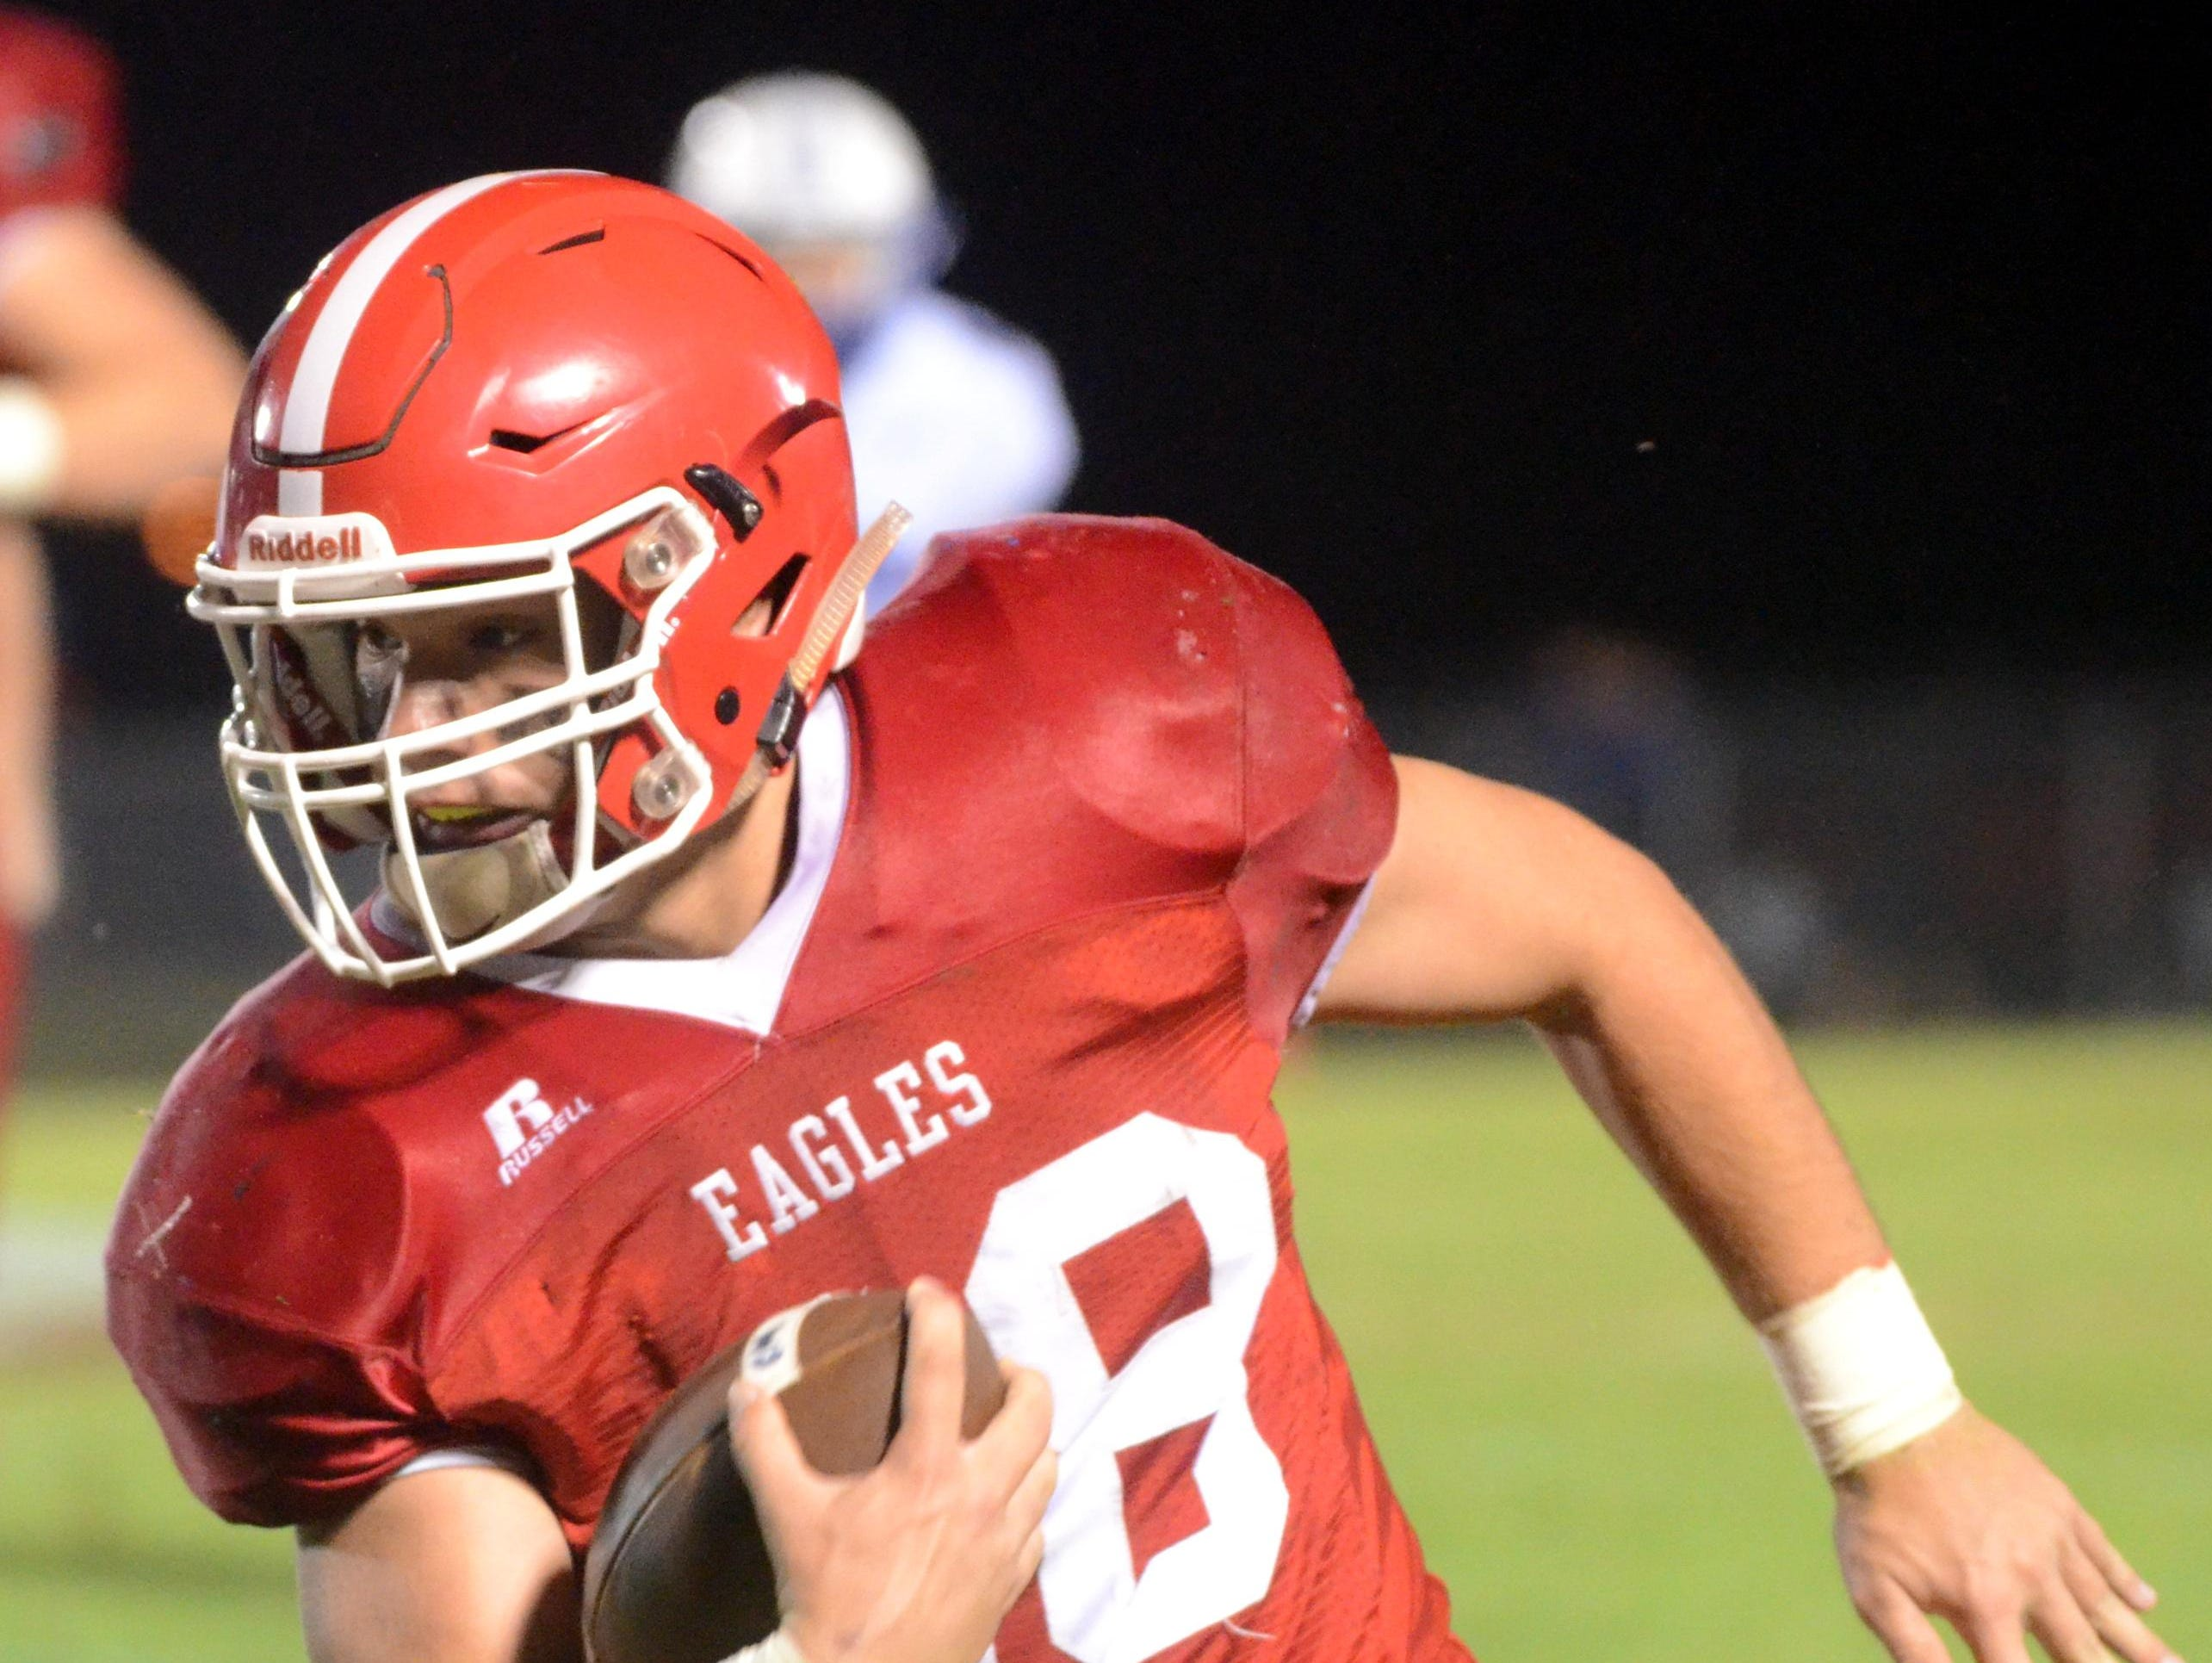 Westmoreland High senior fullback Dylan Todd rushed for a game-high 98 yards and a touchdown as the Eagles rolled to a 35-7 victory over visiting Jackson County on Friday evening.